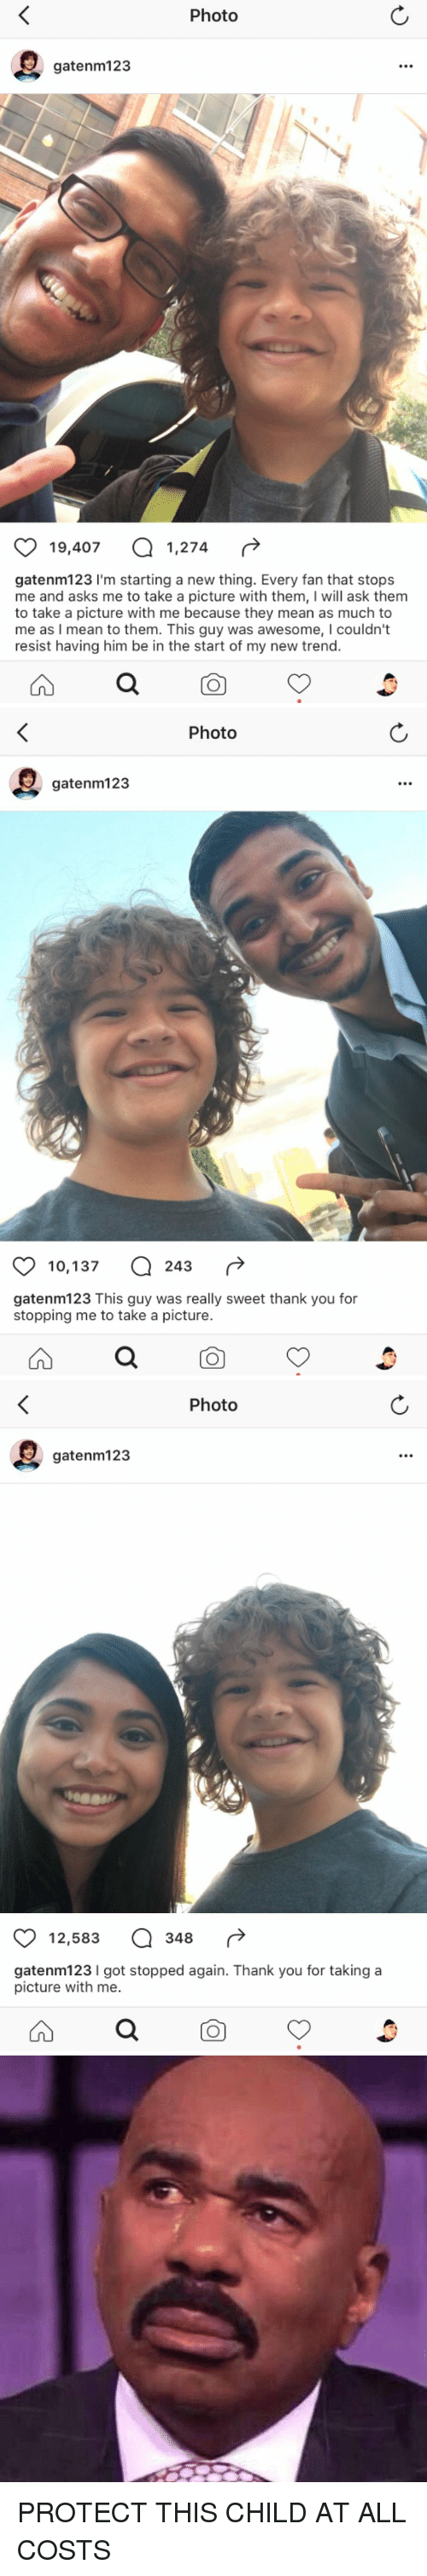 Funny, Thank You, and Mean: Photo  gatenm 123  19,407 a 1,274  gatenm123 I'm starting a new thing. Every fan that stops  me and asks me to take a picture with them, l will ask them  to take a picture with me because they mean as much to  me as I mean to them. This guy was awesome, l couldn't  resist having him be in the start of my new trend.   Photo  gatenm123  10,137 243  gatenm123 This guy was really sweet thank you for  stopping me to take a picture.   Photo  gatenm123  12,583 a 348  gatenm123 l got stopped again. Thank you for taking a  picture with me. PROTECT THIS CHILD AT ALL COSTS